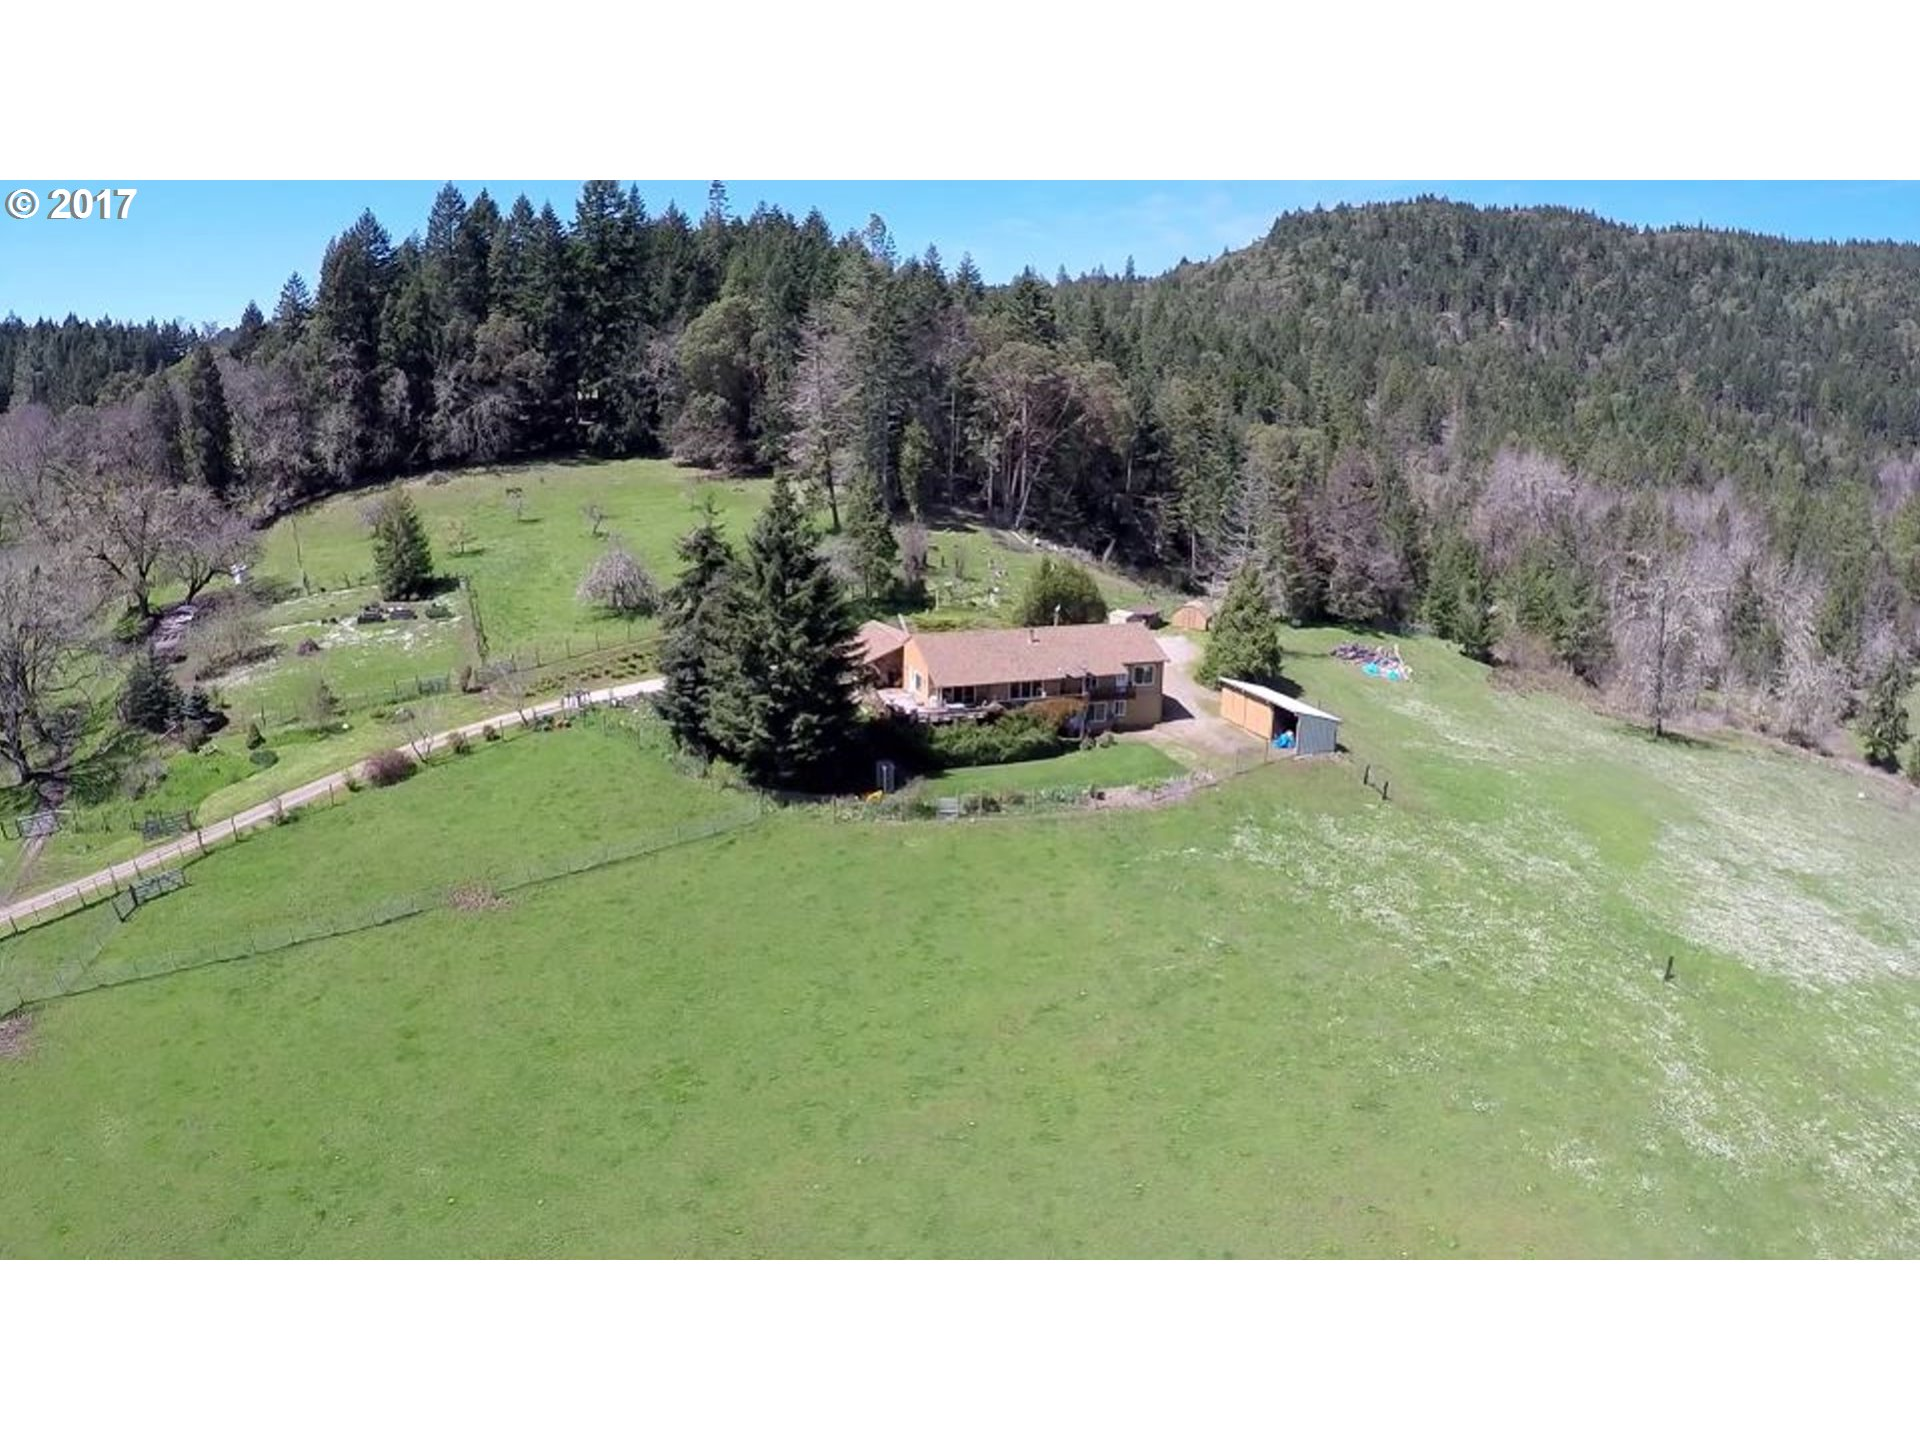 Trail, OR 4 Bedroom Home For Sale